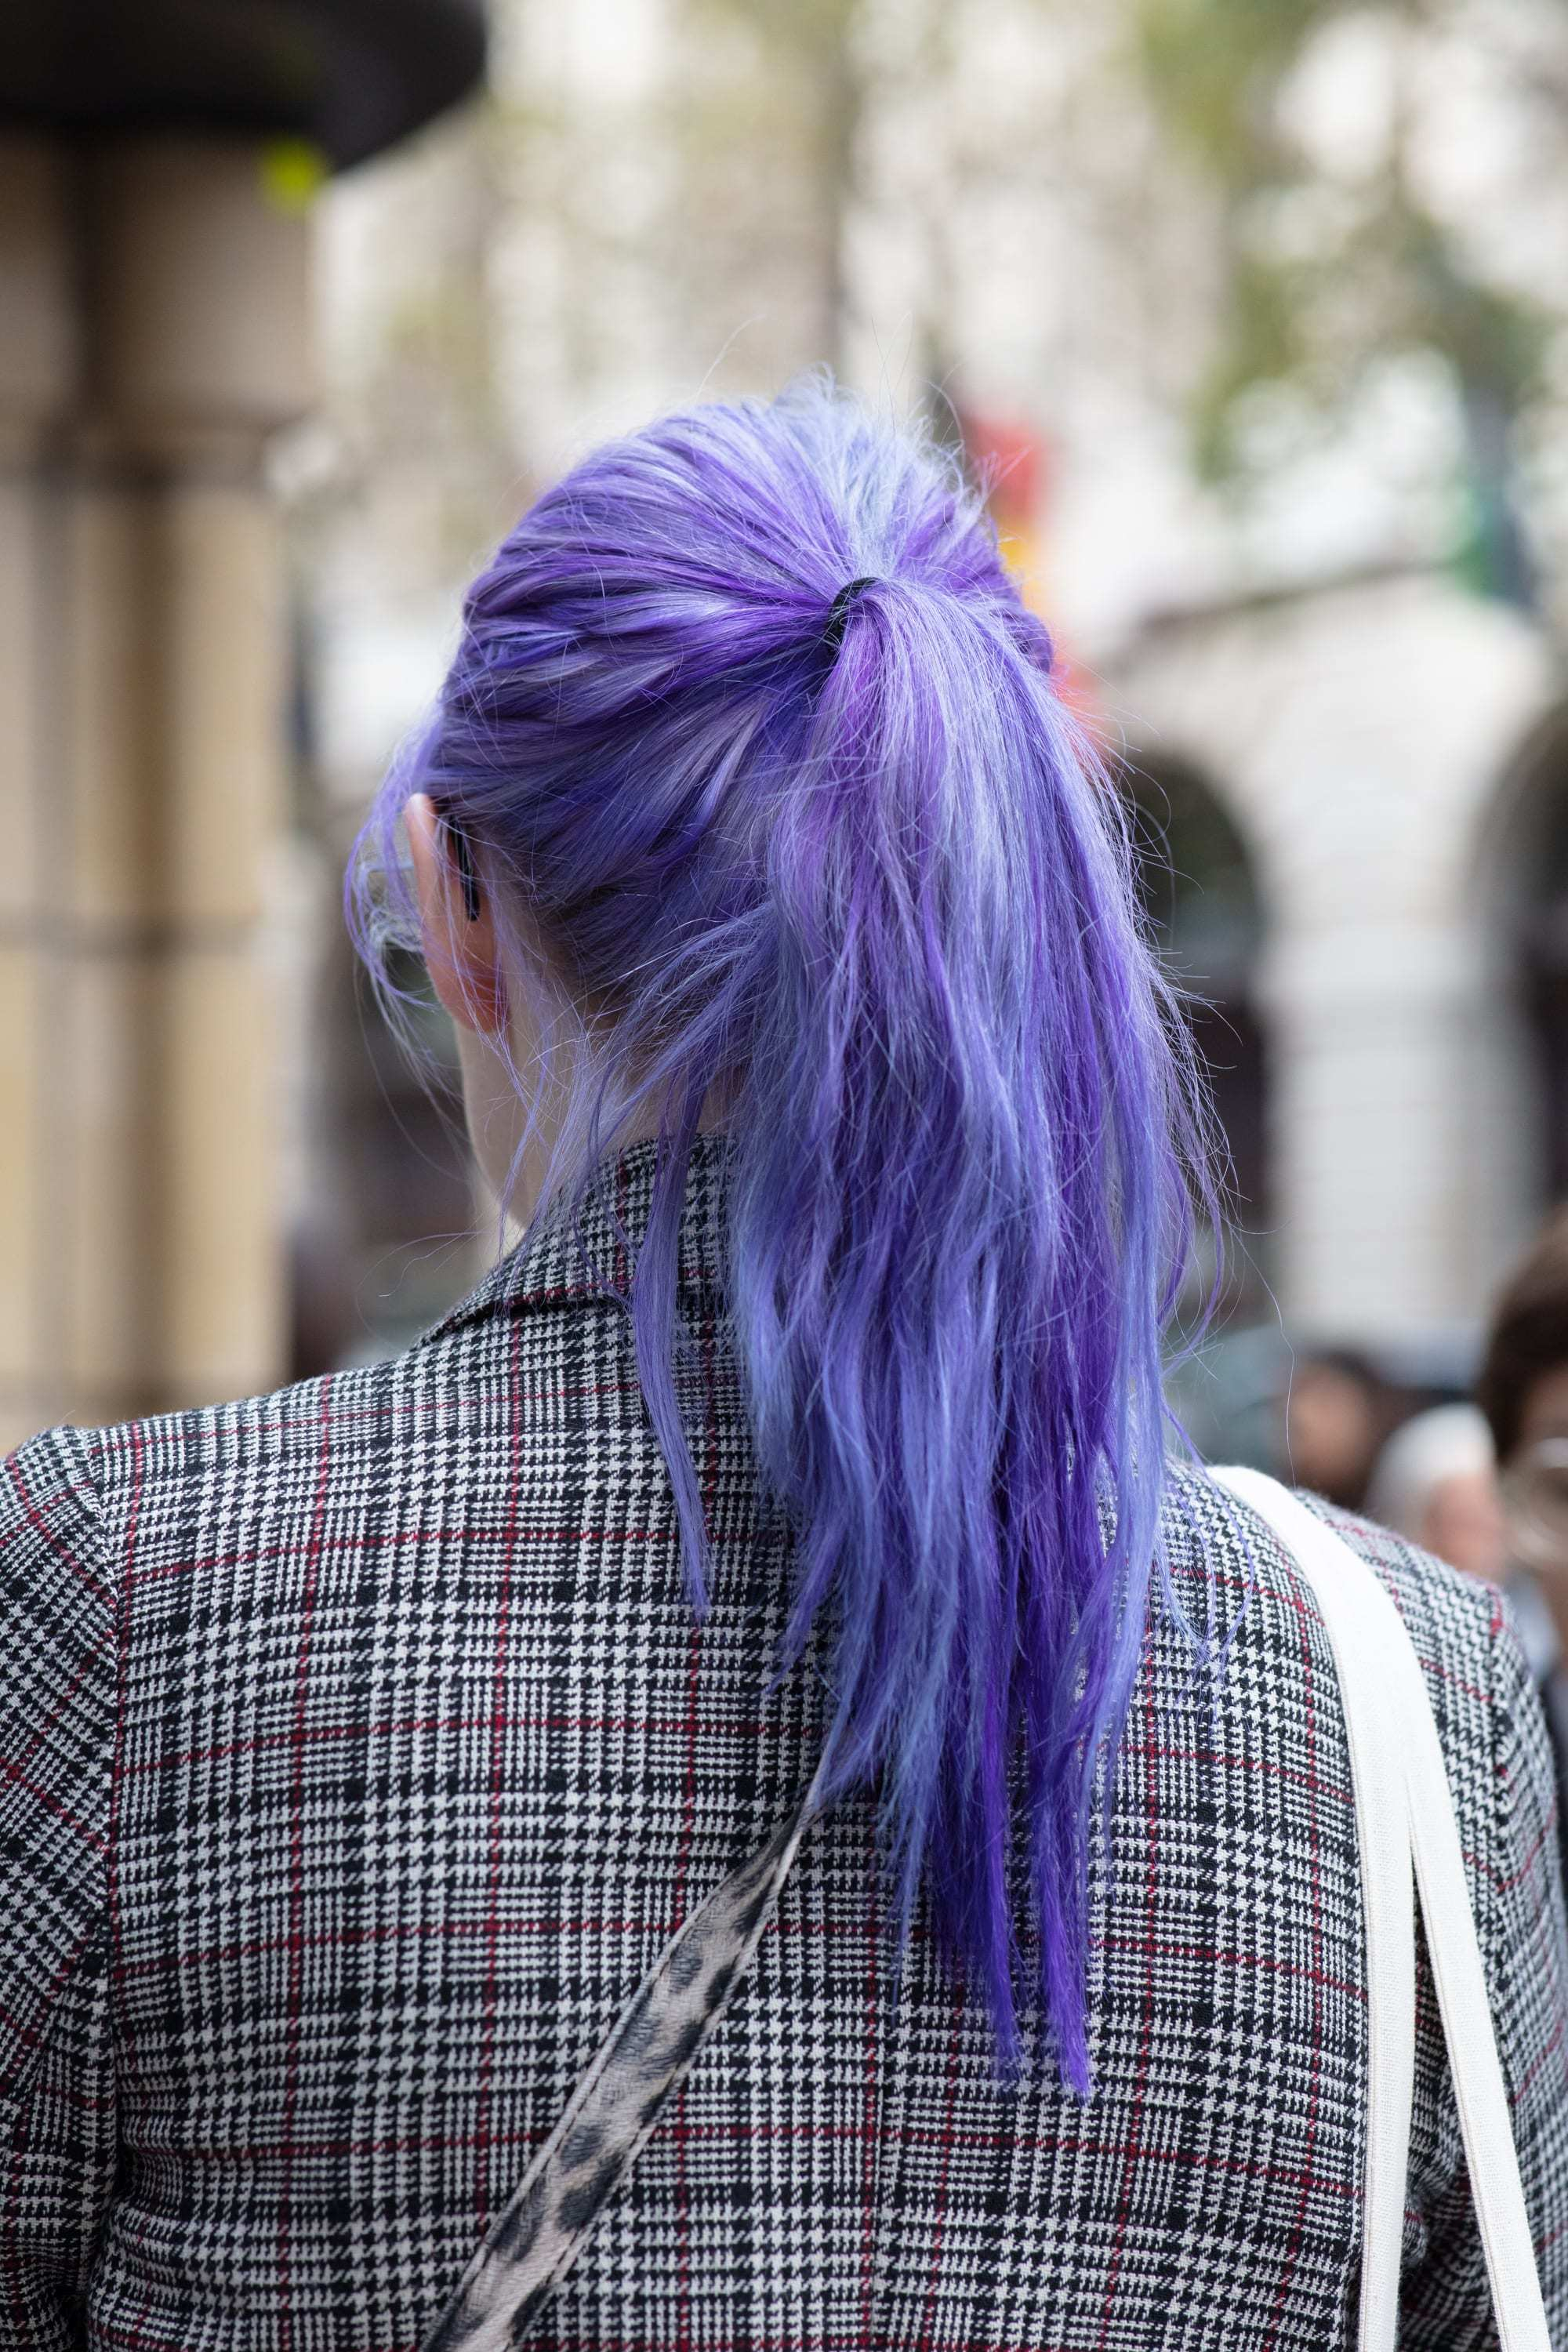 Hot oil treatment damaged hair: Woman with purple low ponytail, wearing checked blazer outside